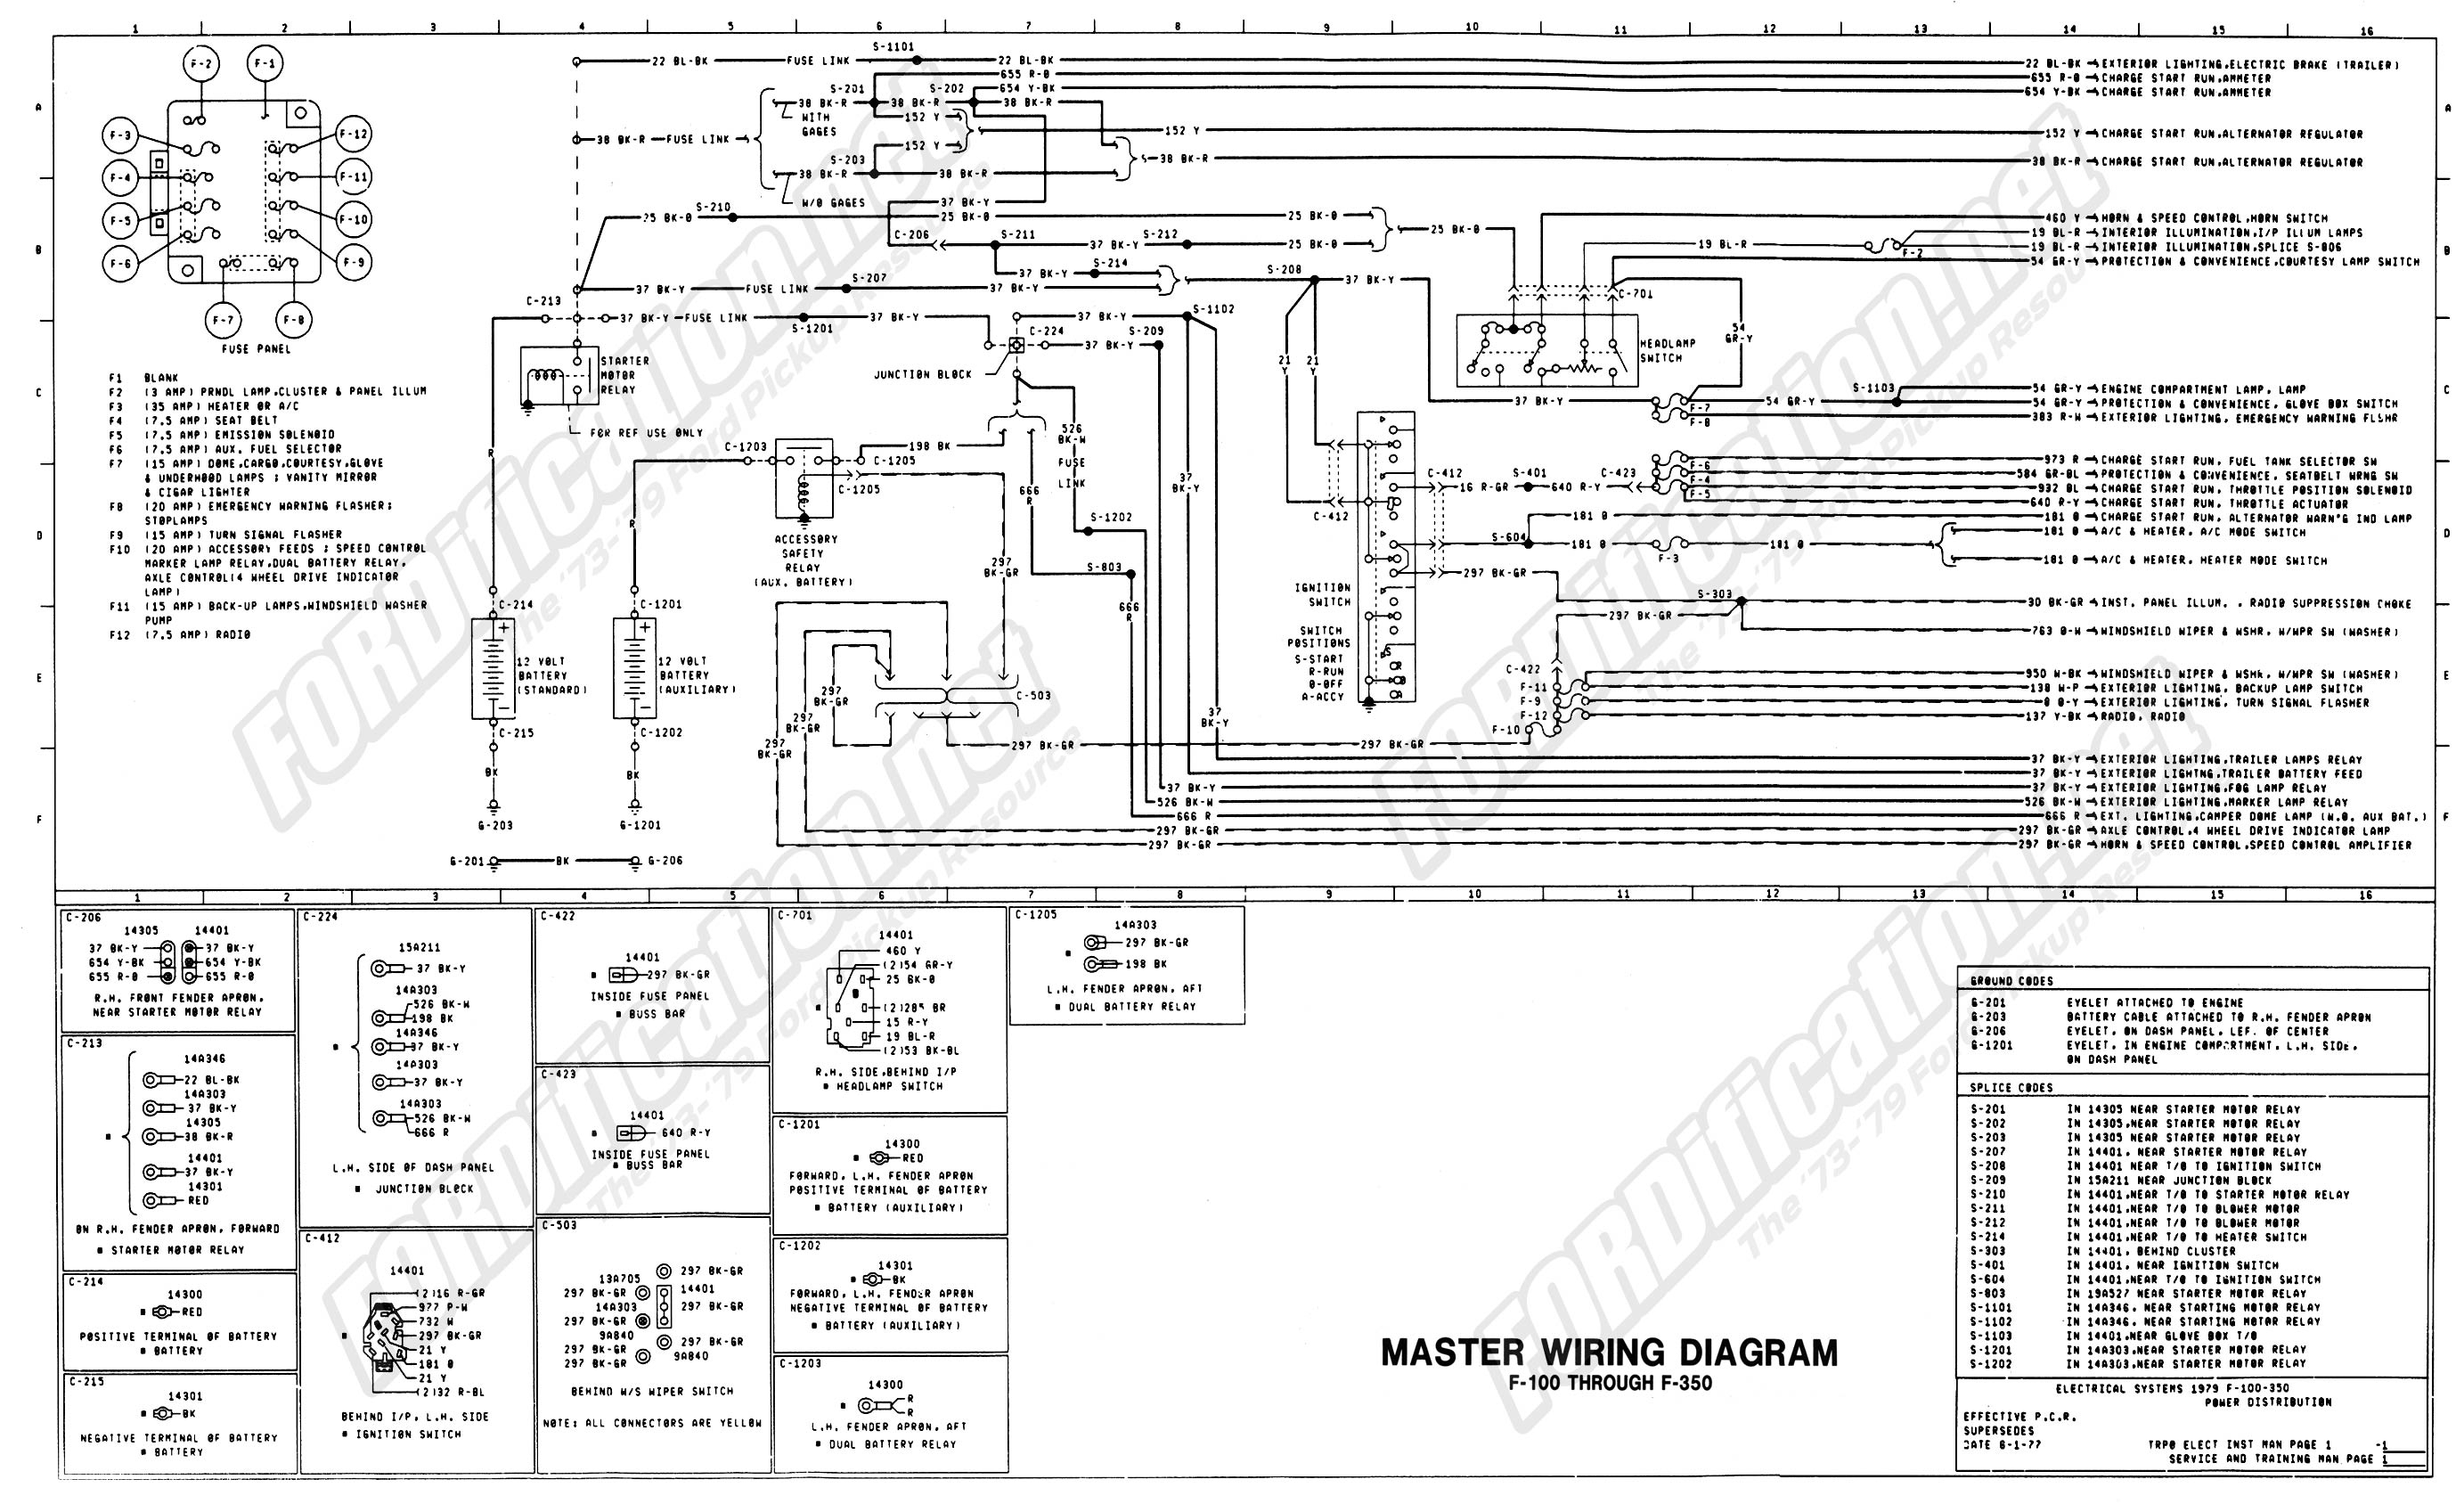 ford stereo wiring diagram Download-wiring 79master 1of9 1-p